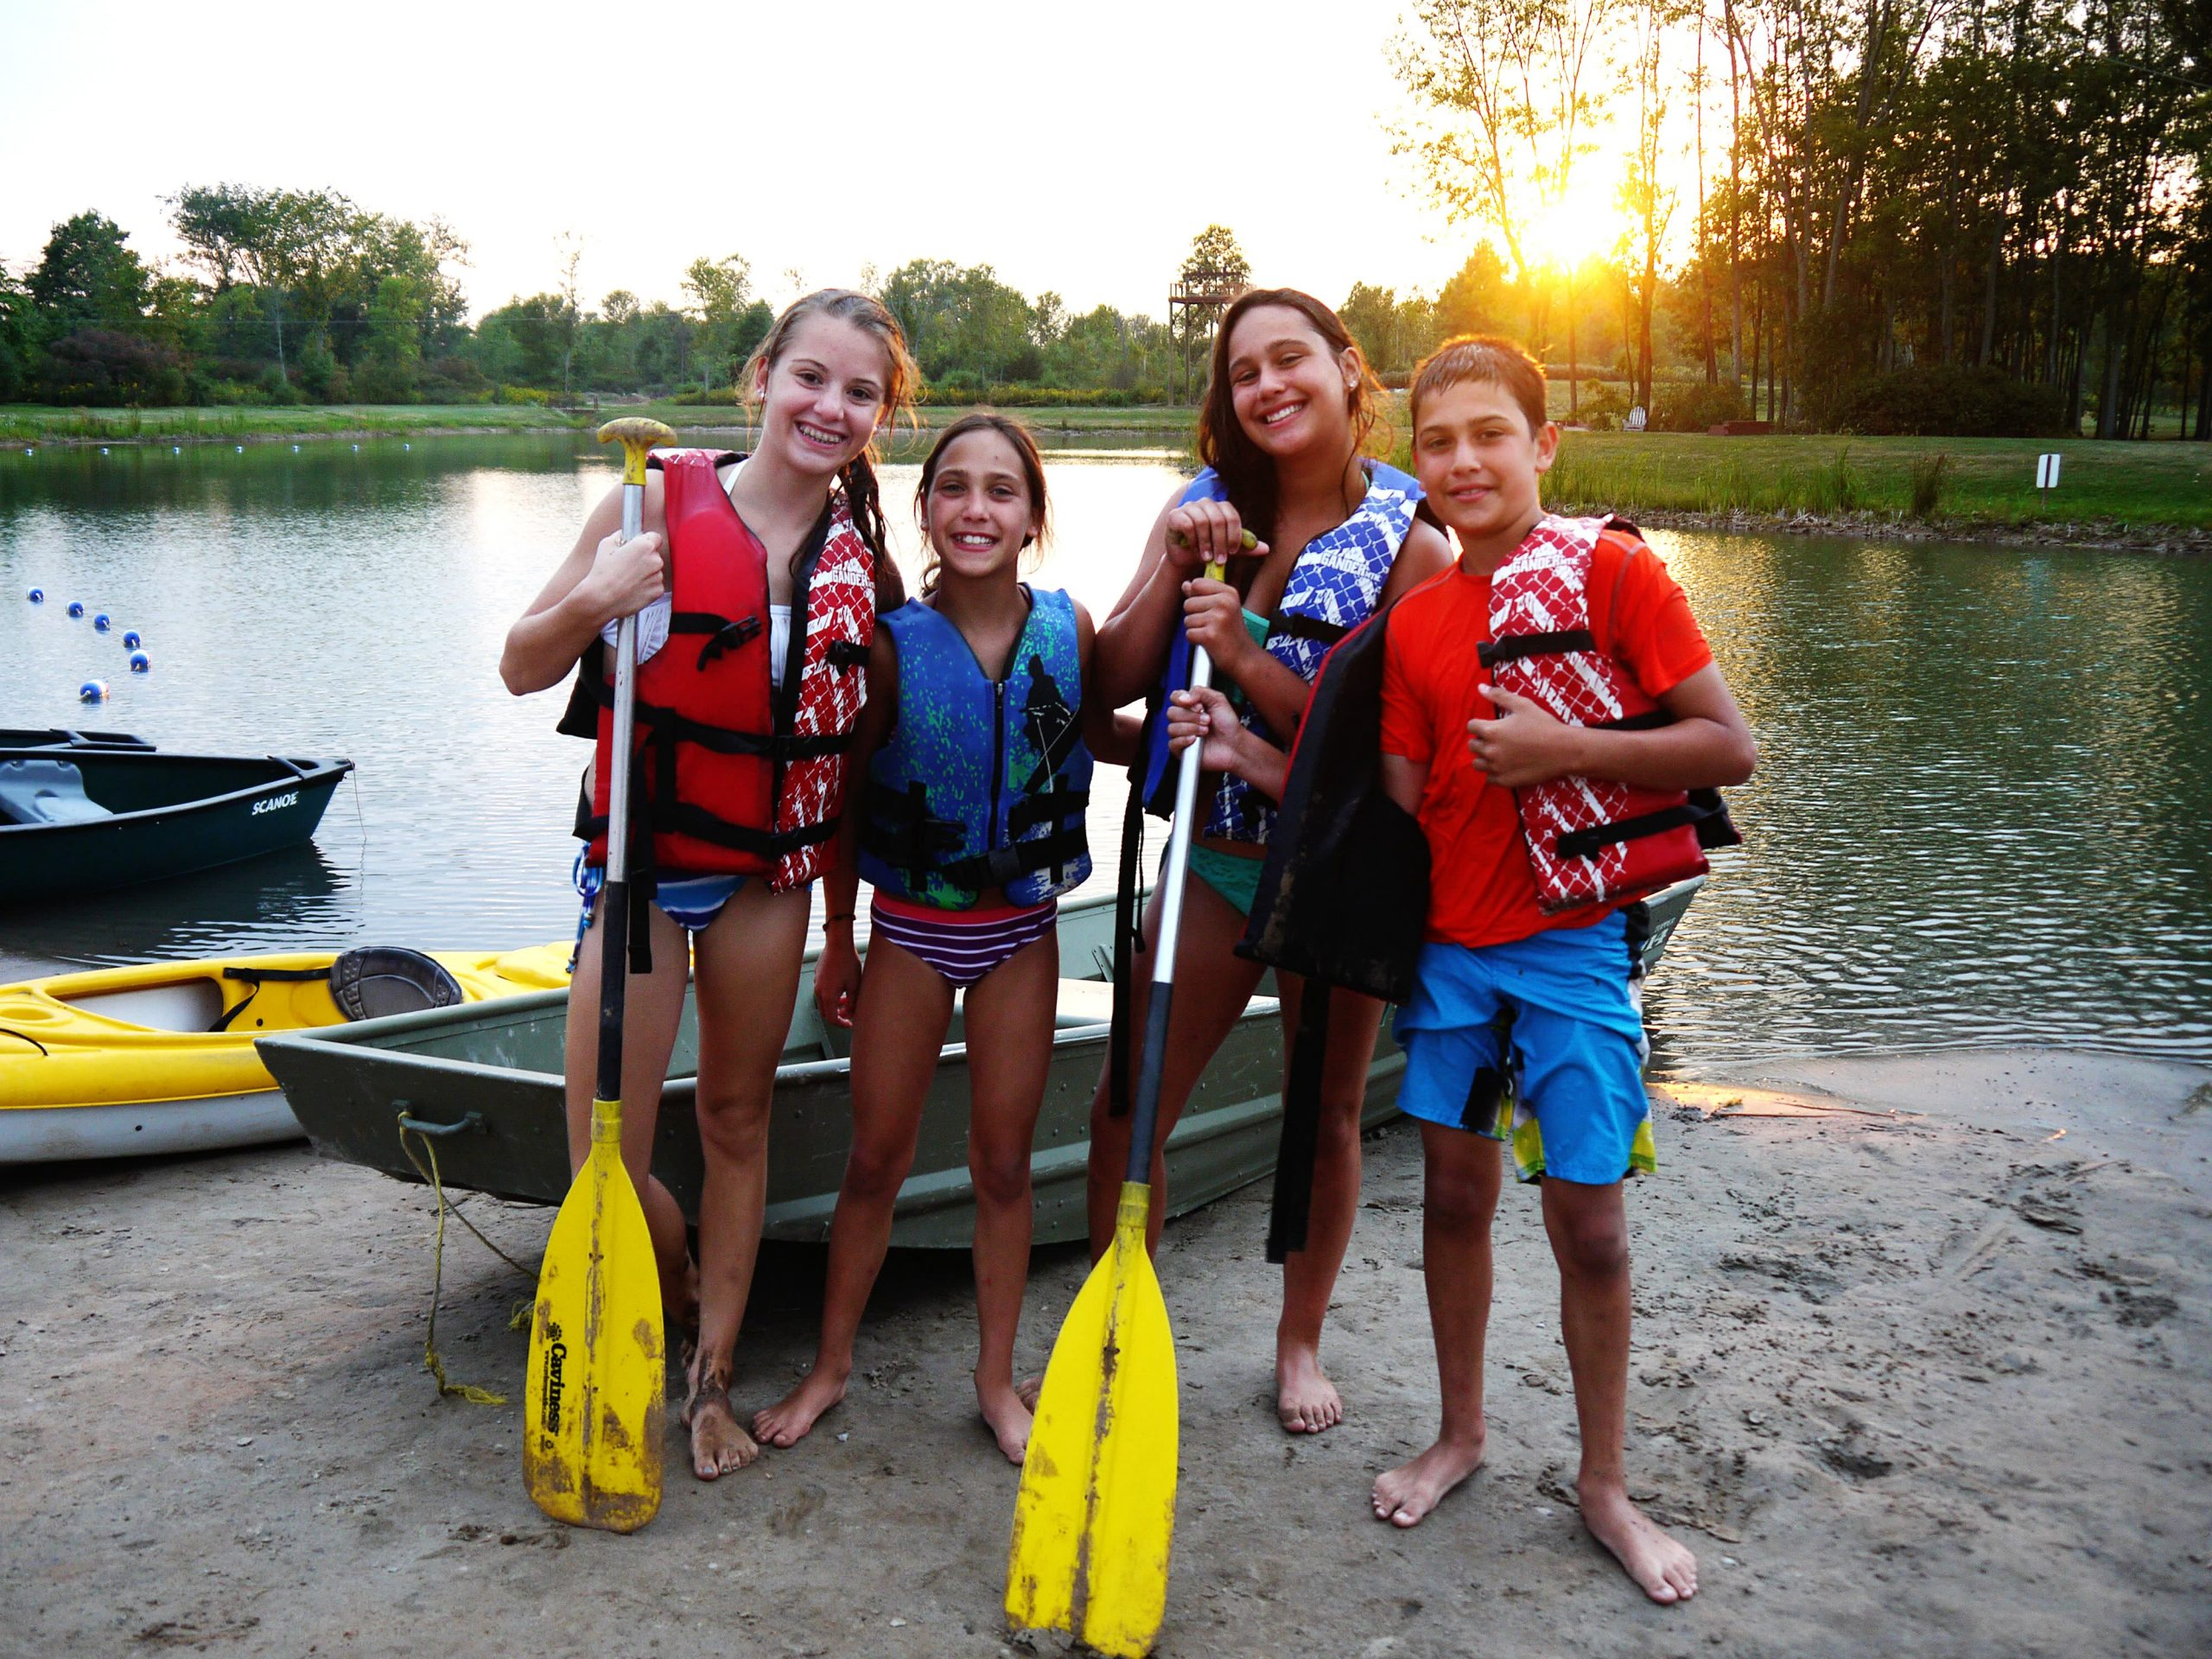 kids with life jackets and canoe paddles standing on the beach